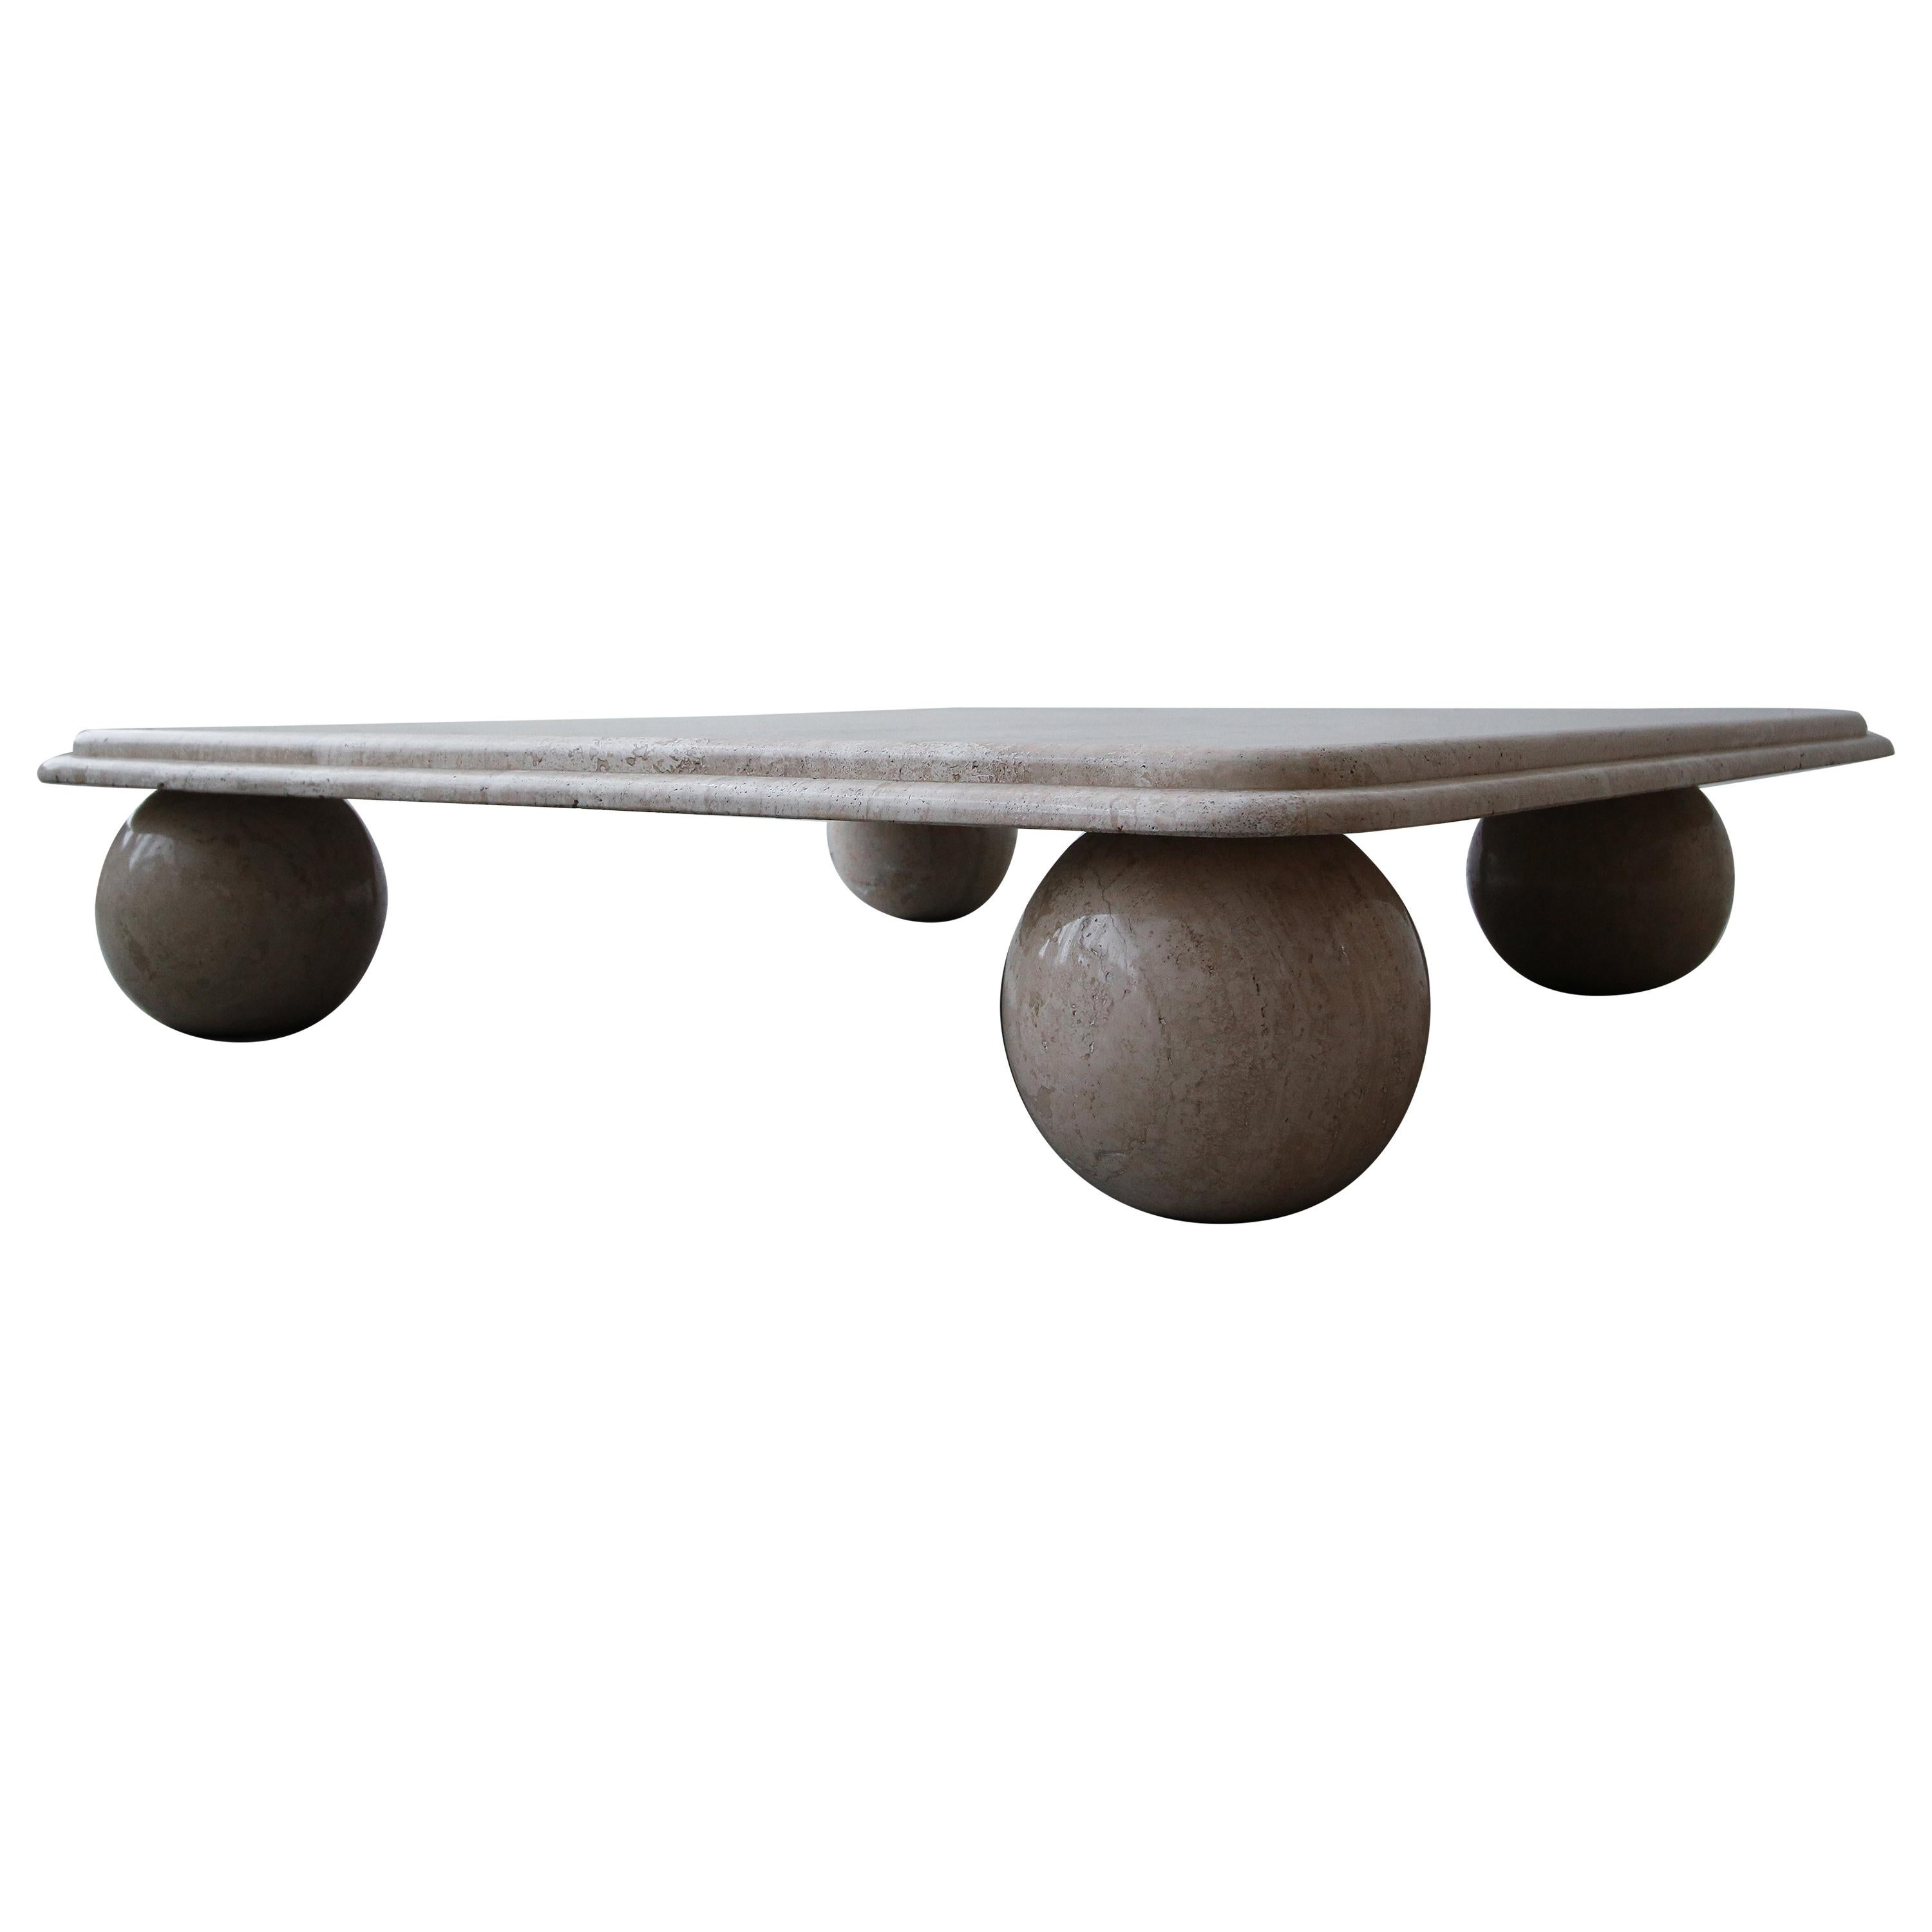 - Postmodern Square Low Profile Travertine Coffee Table Round Ball